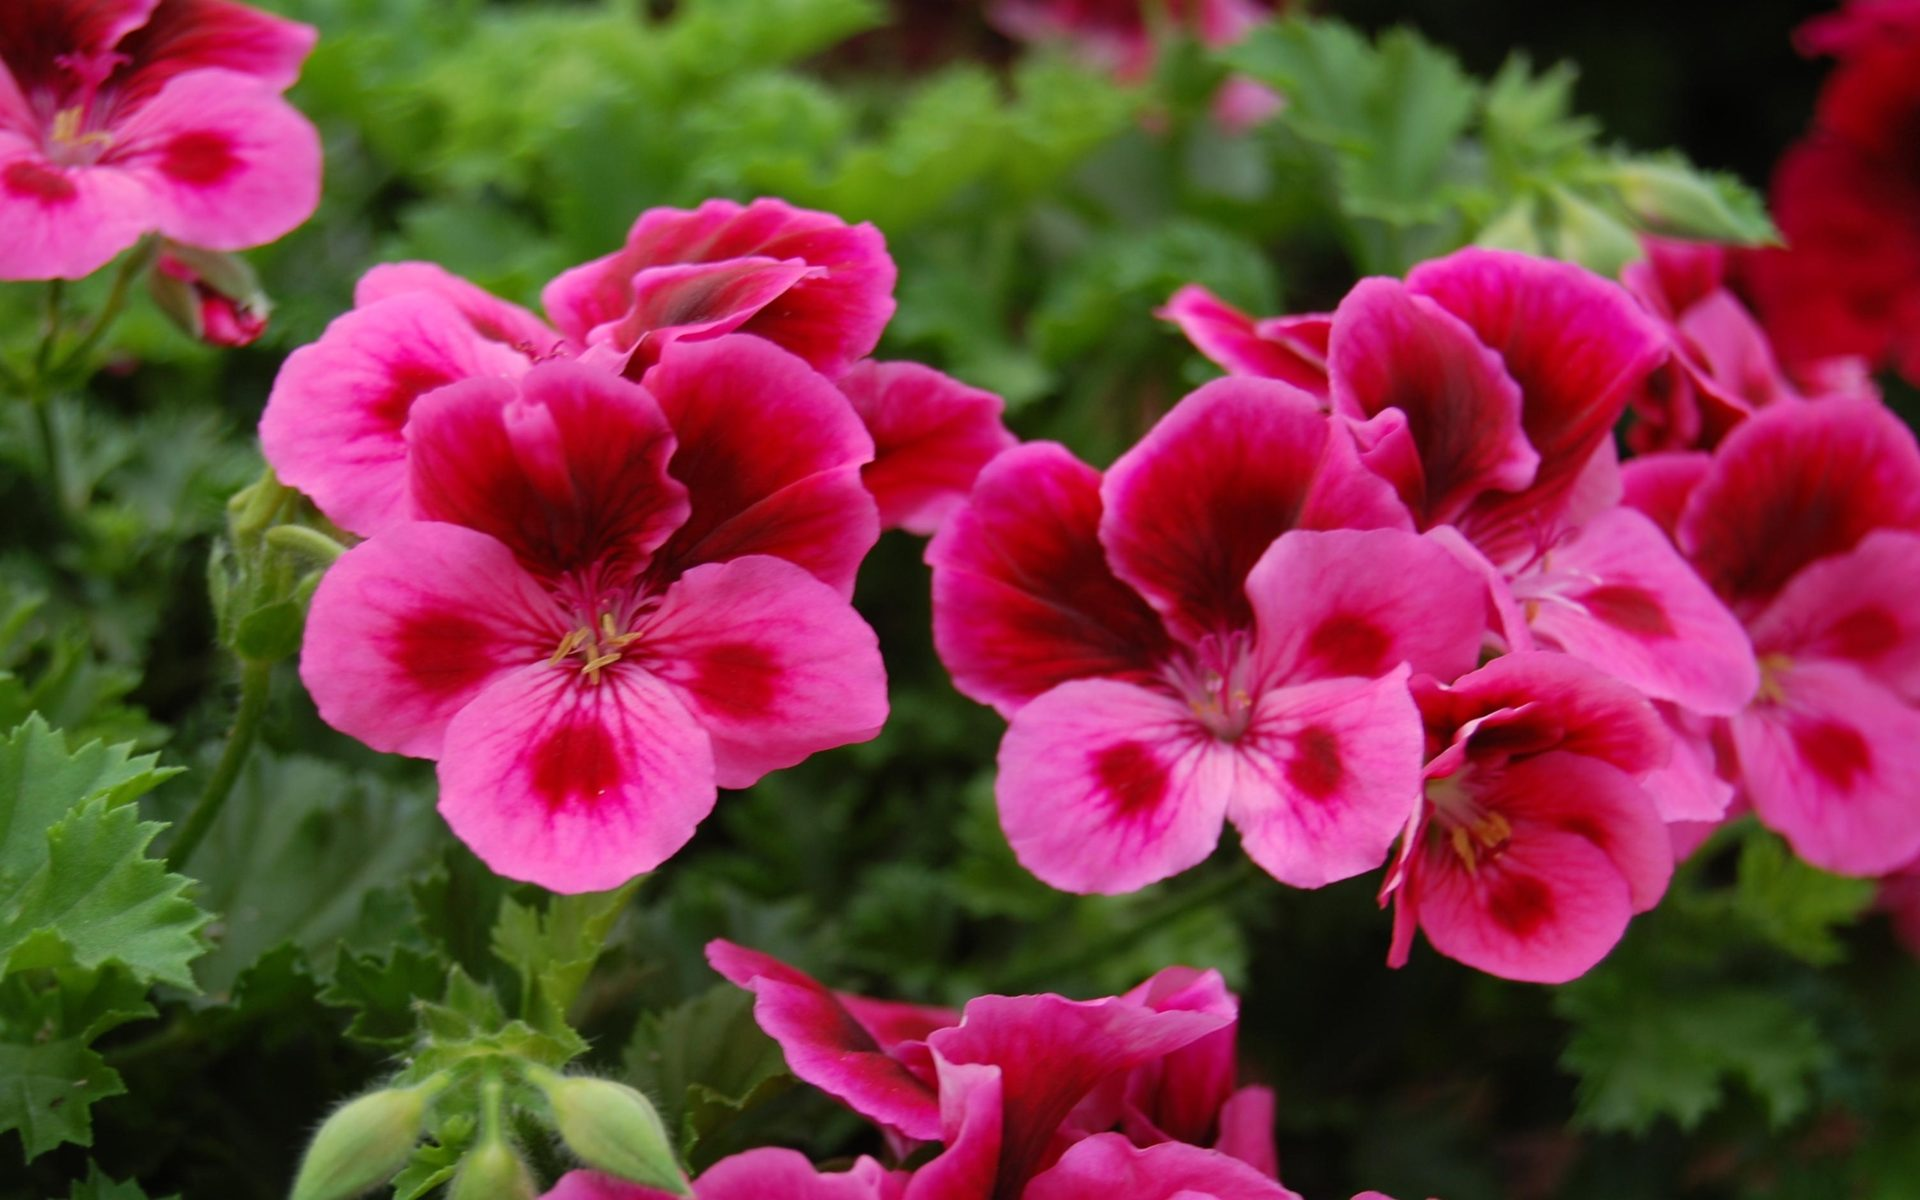 Cute Lock Screen Wallpapers For Iphone Geranium Candy Flowers Pink W Eye Wallpapers13 Com